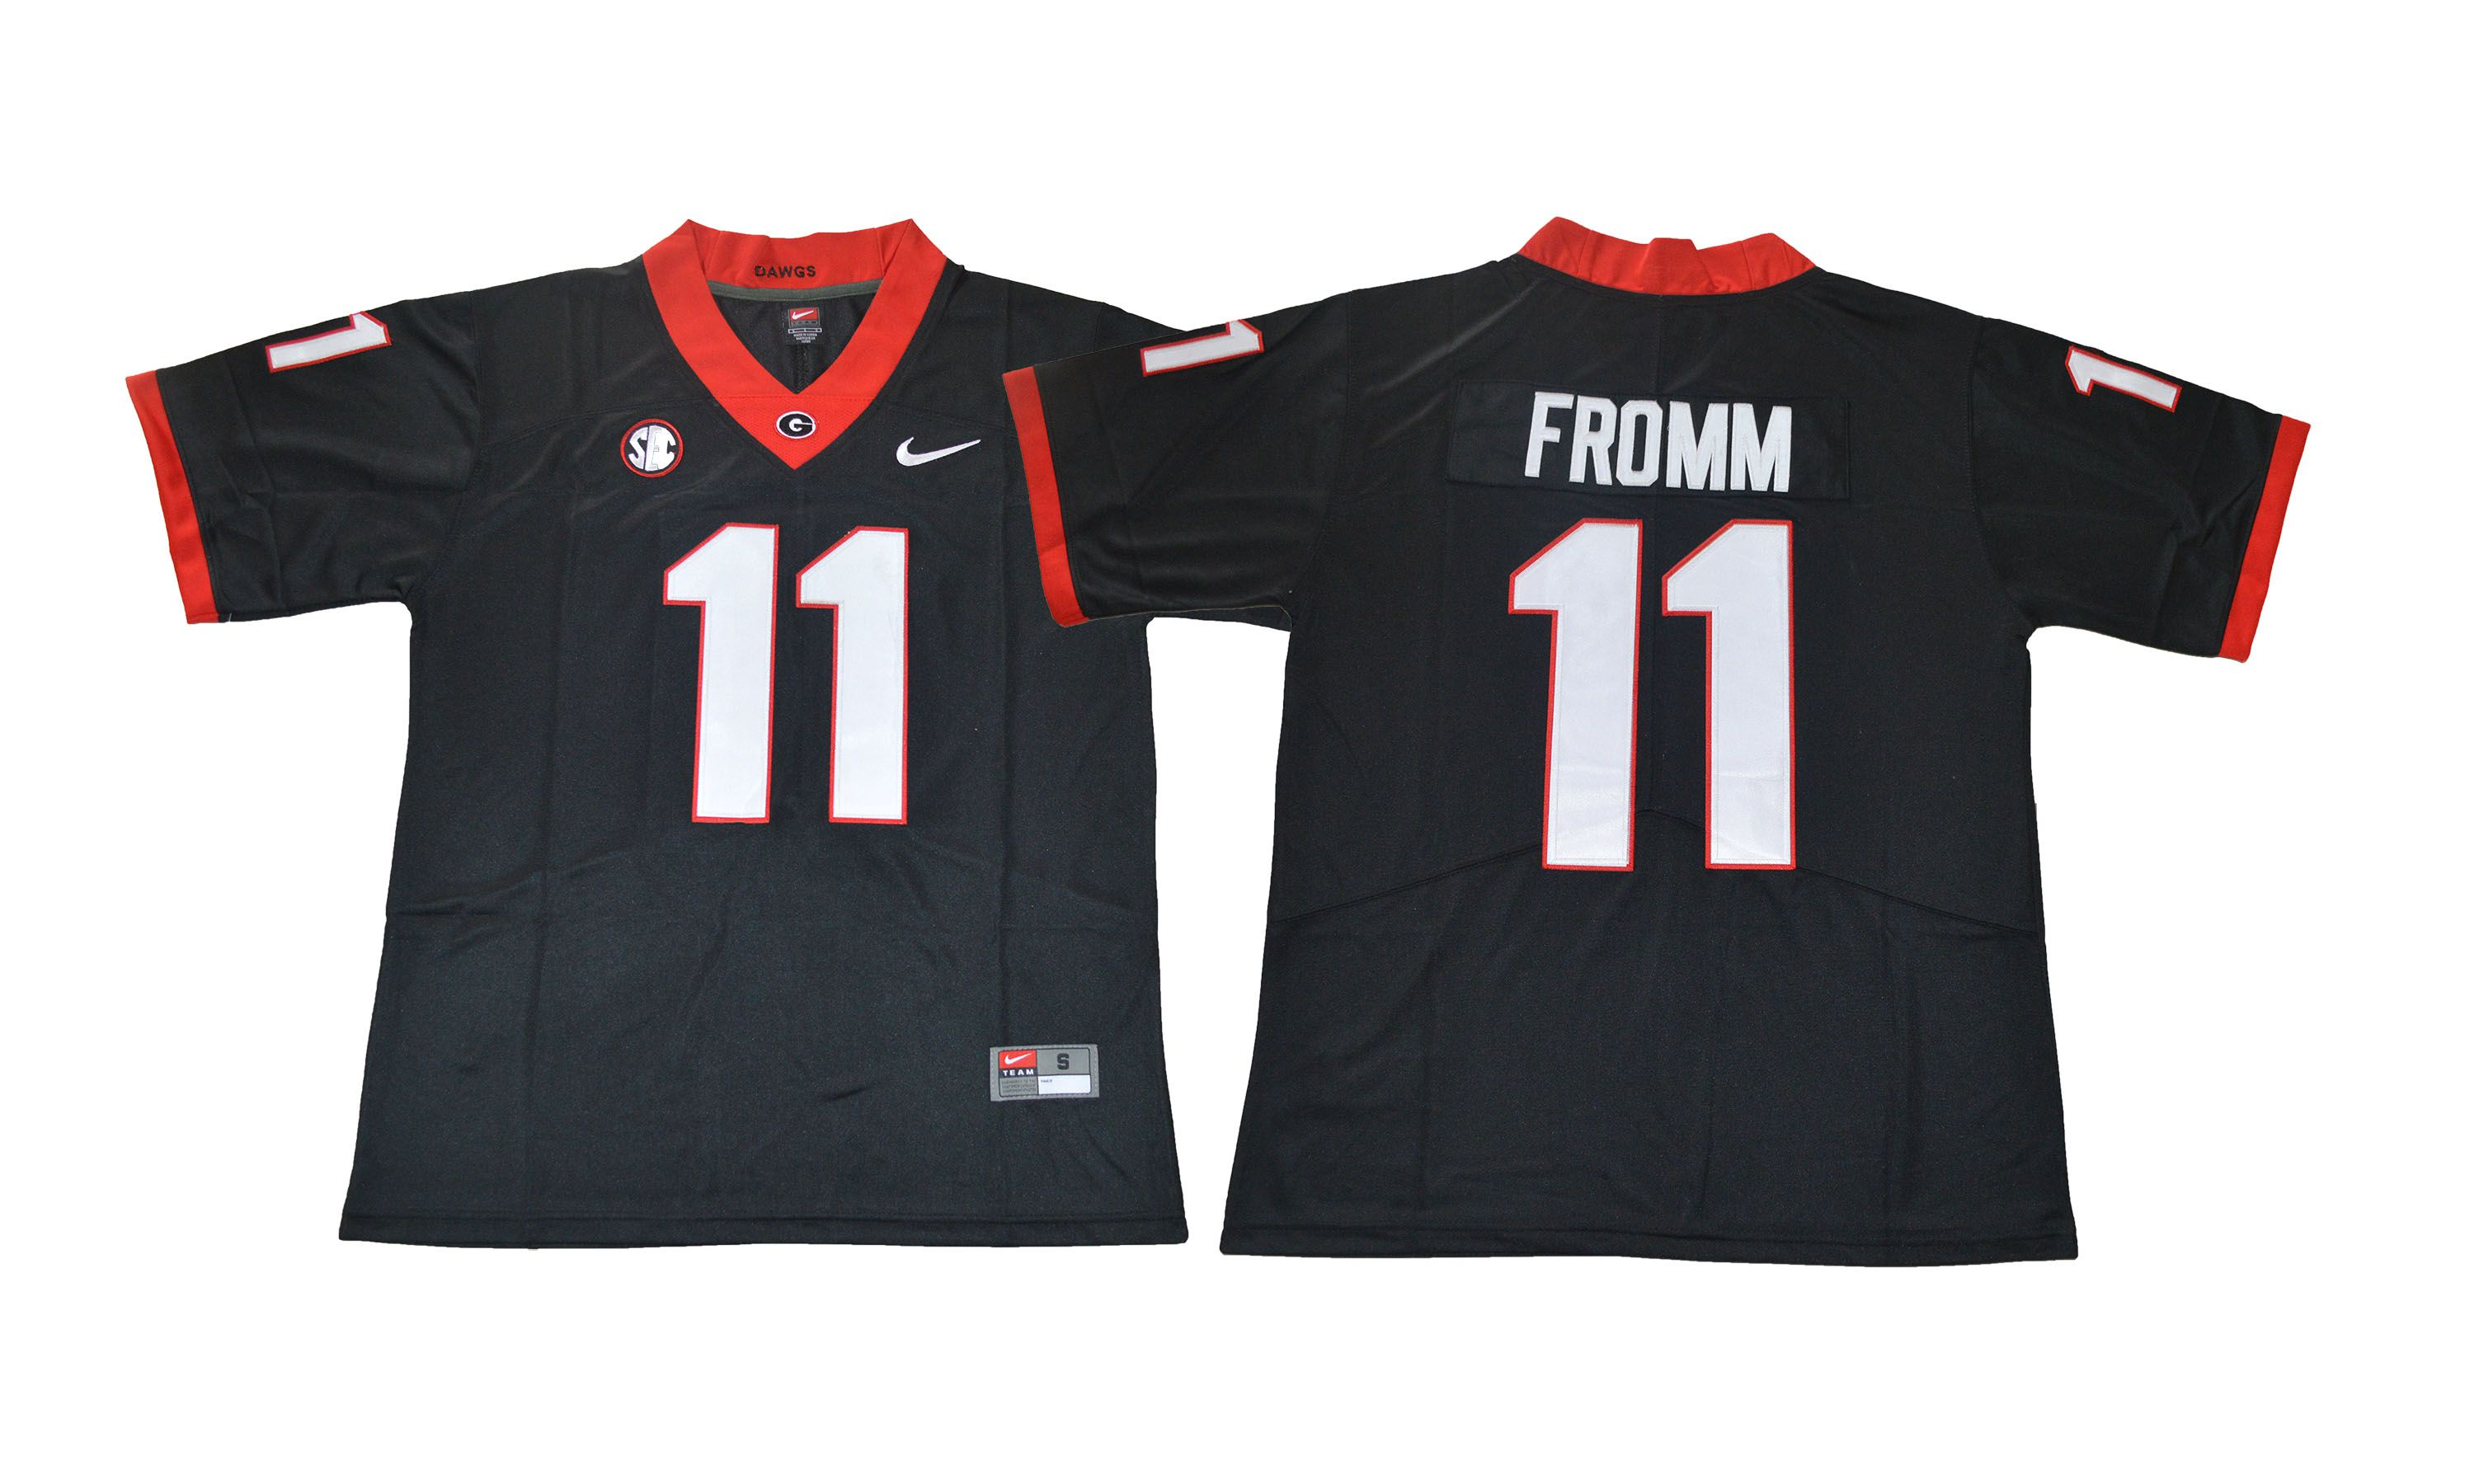 Men NCAA 2017 Georgia Bulldogs 11 Fromm black jersey